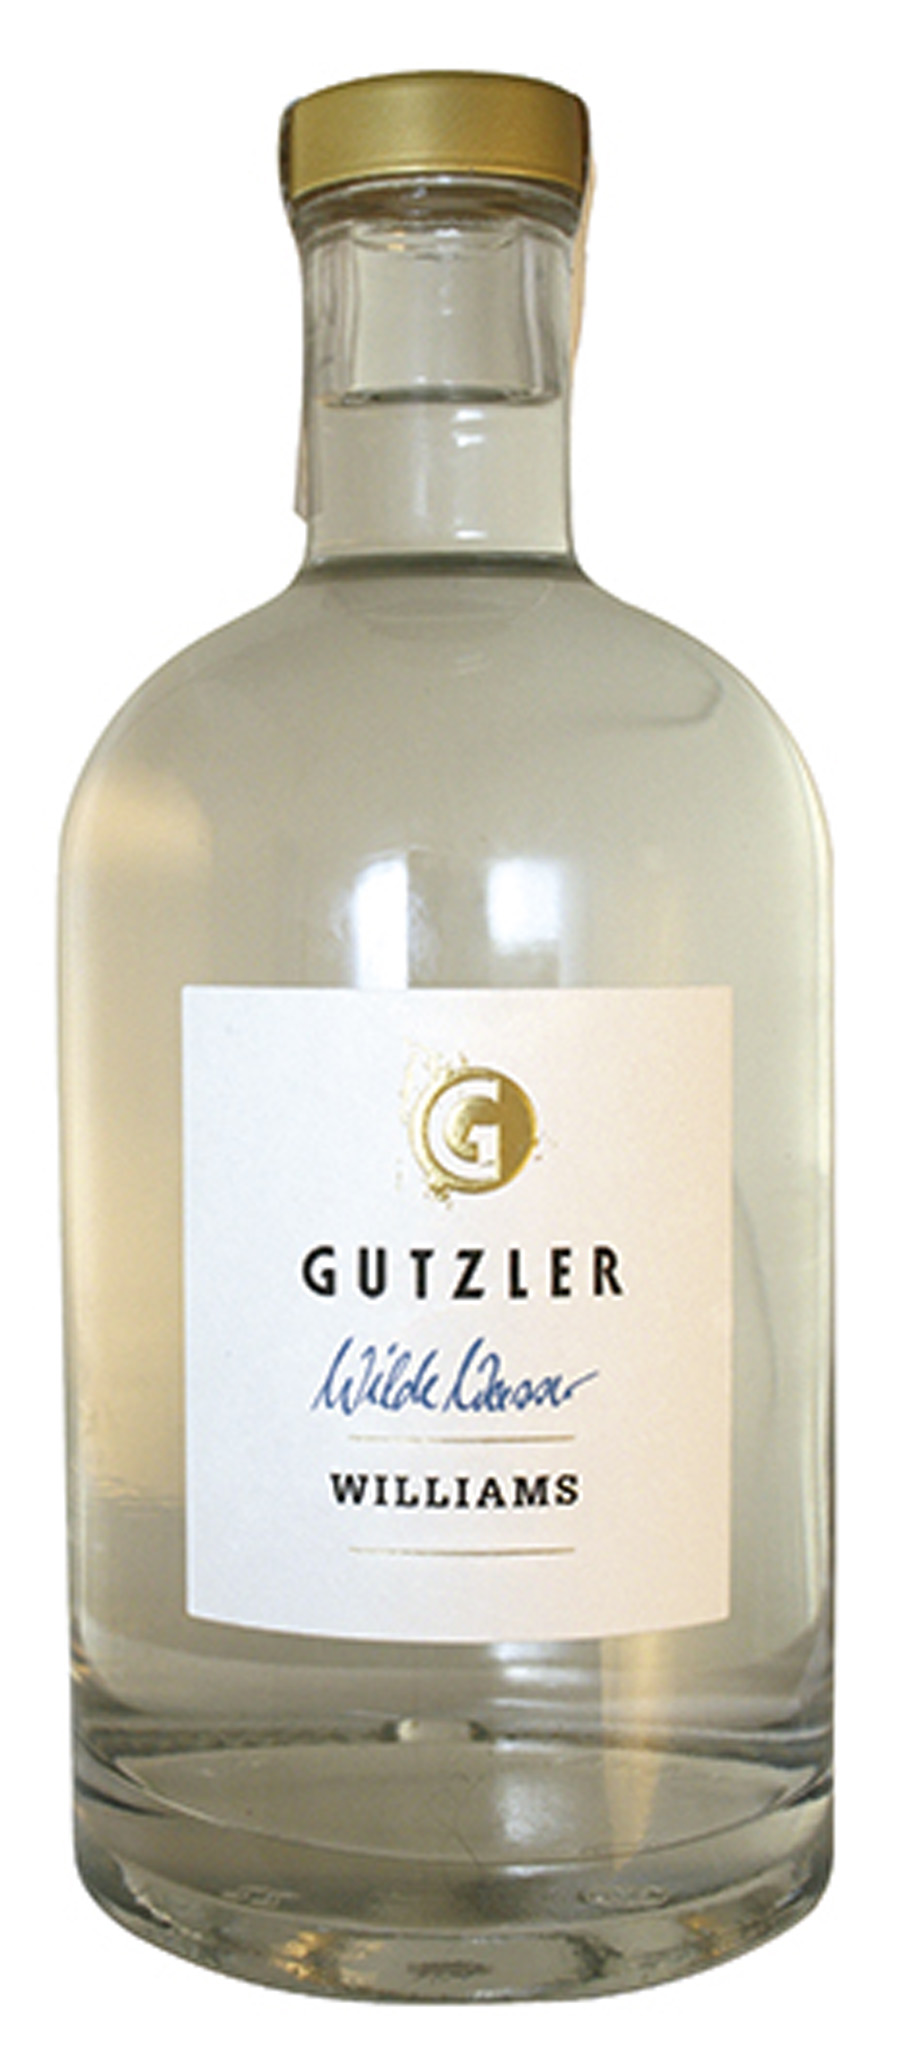 D Gutzler WWWilliams w